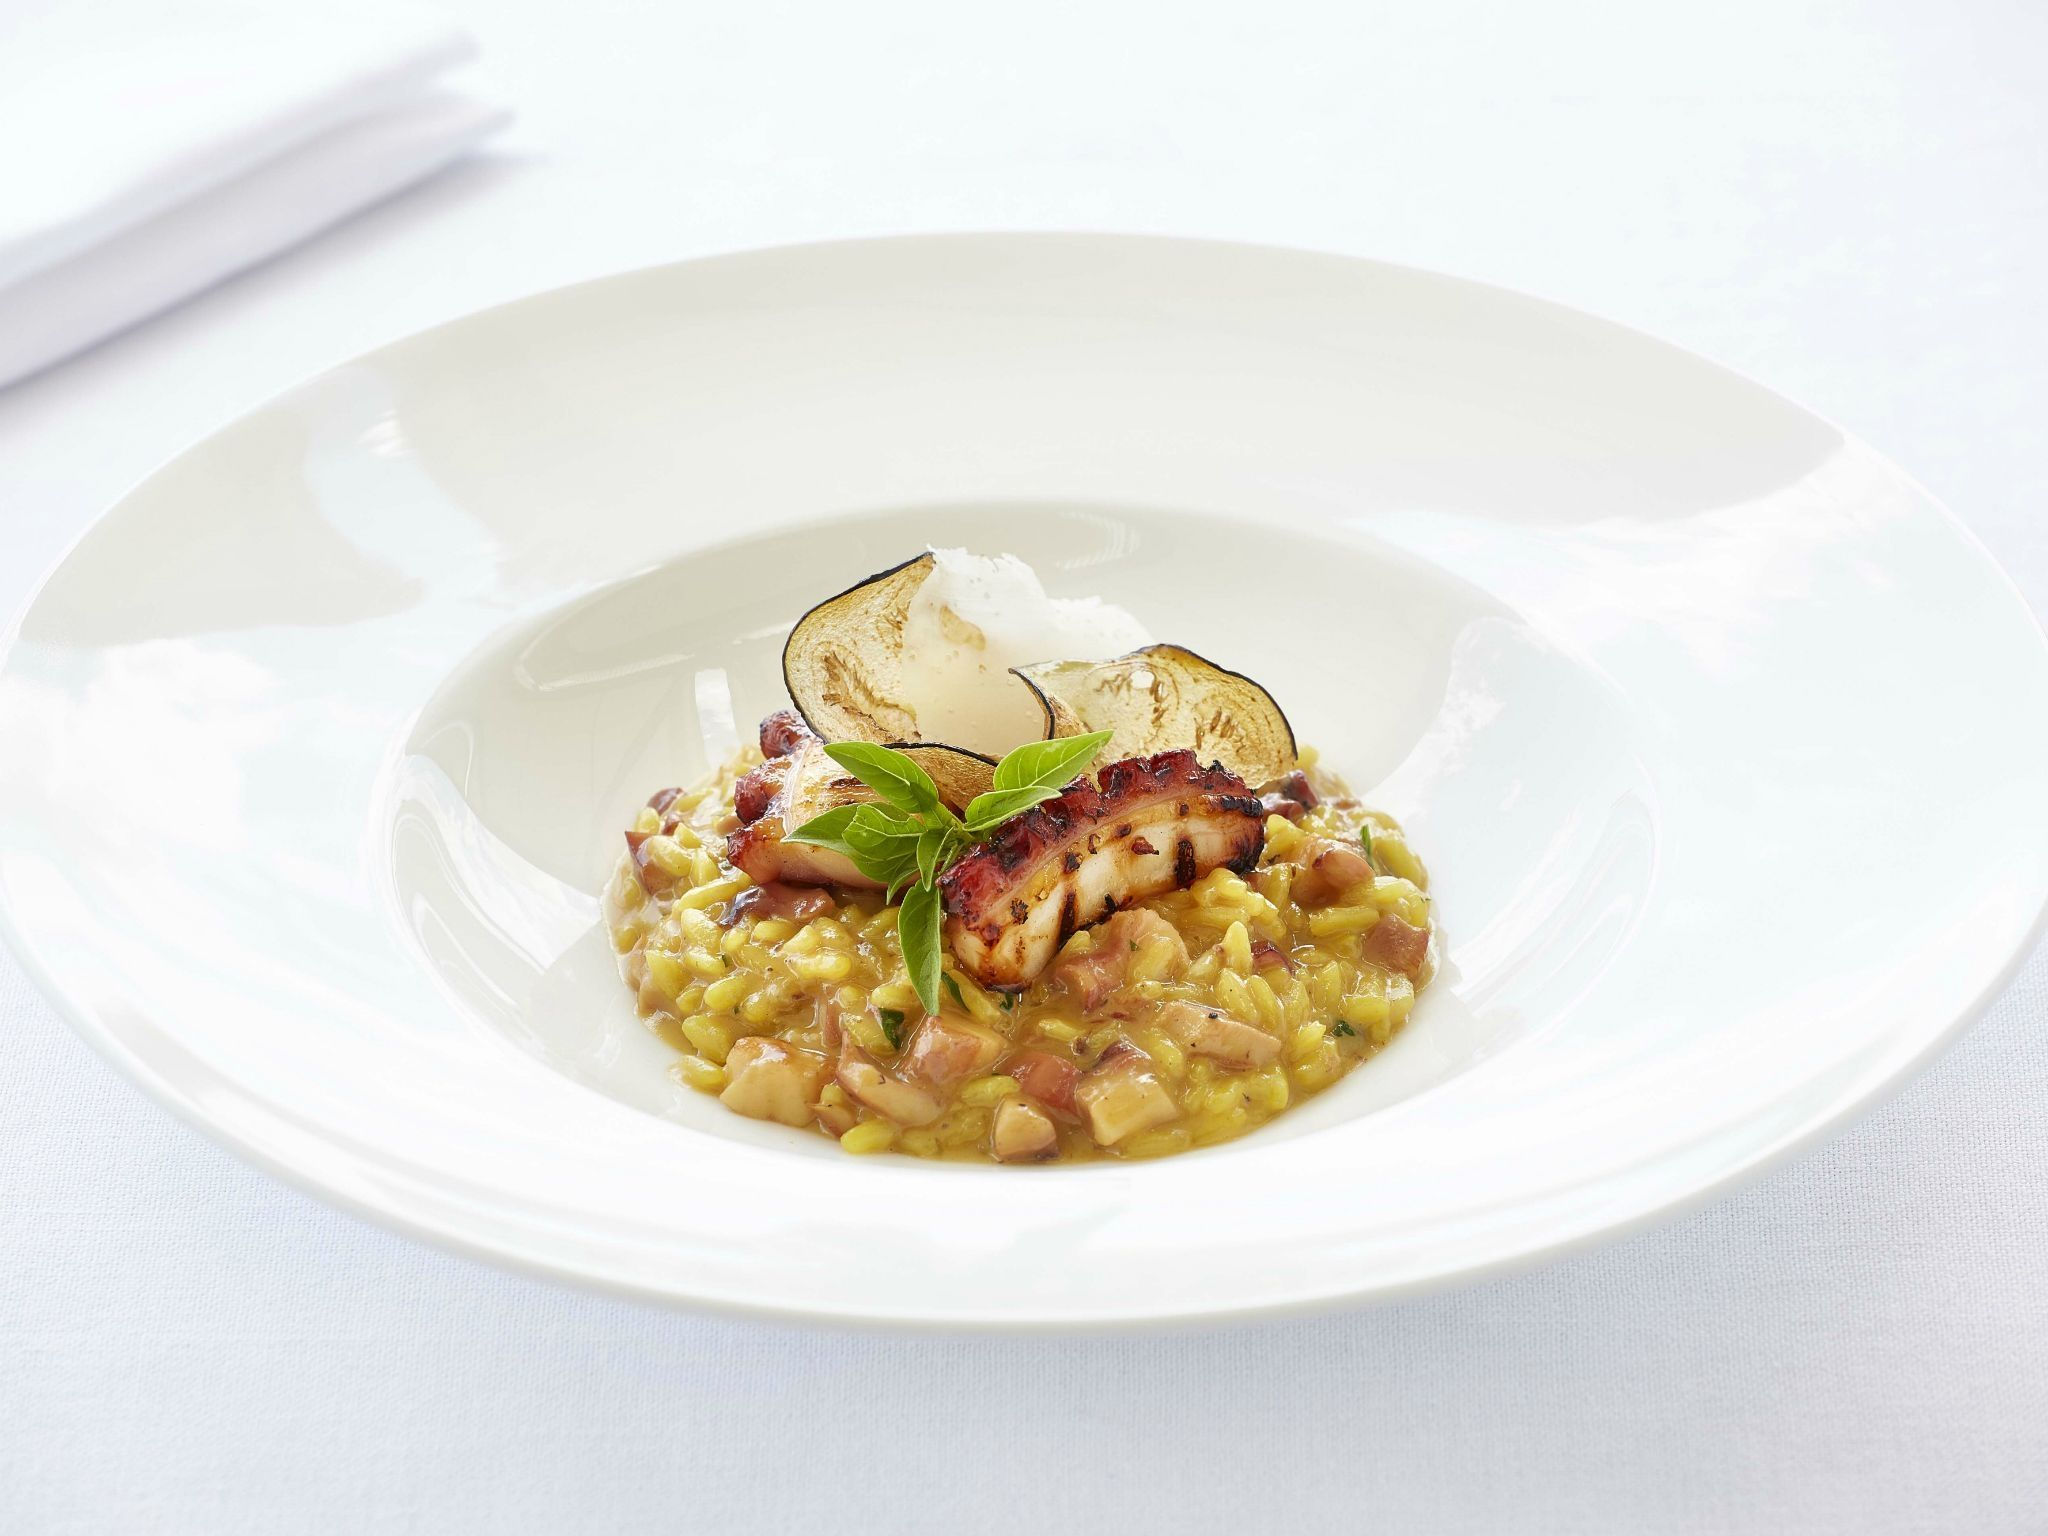 "=""Risotto-with-octopus-saffron-roasted-eggplant-and-aged-balsamic-vinegar-GB-Roof-Garden-Restaurant""/"